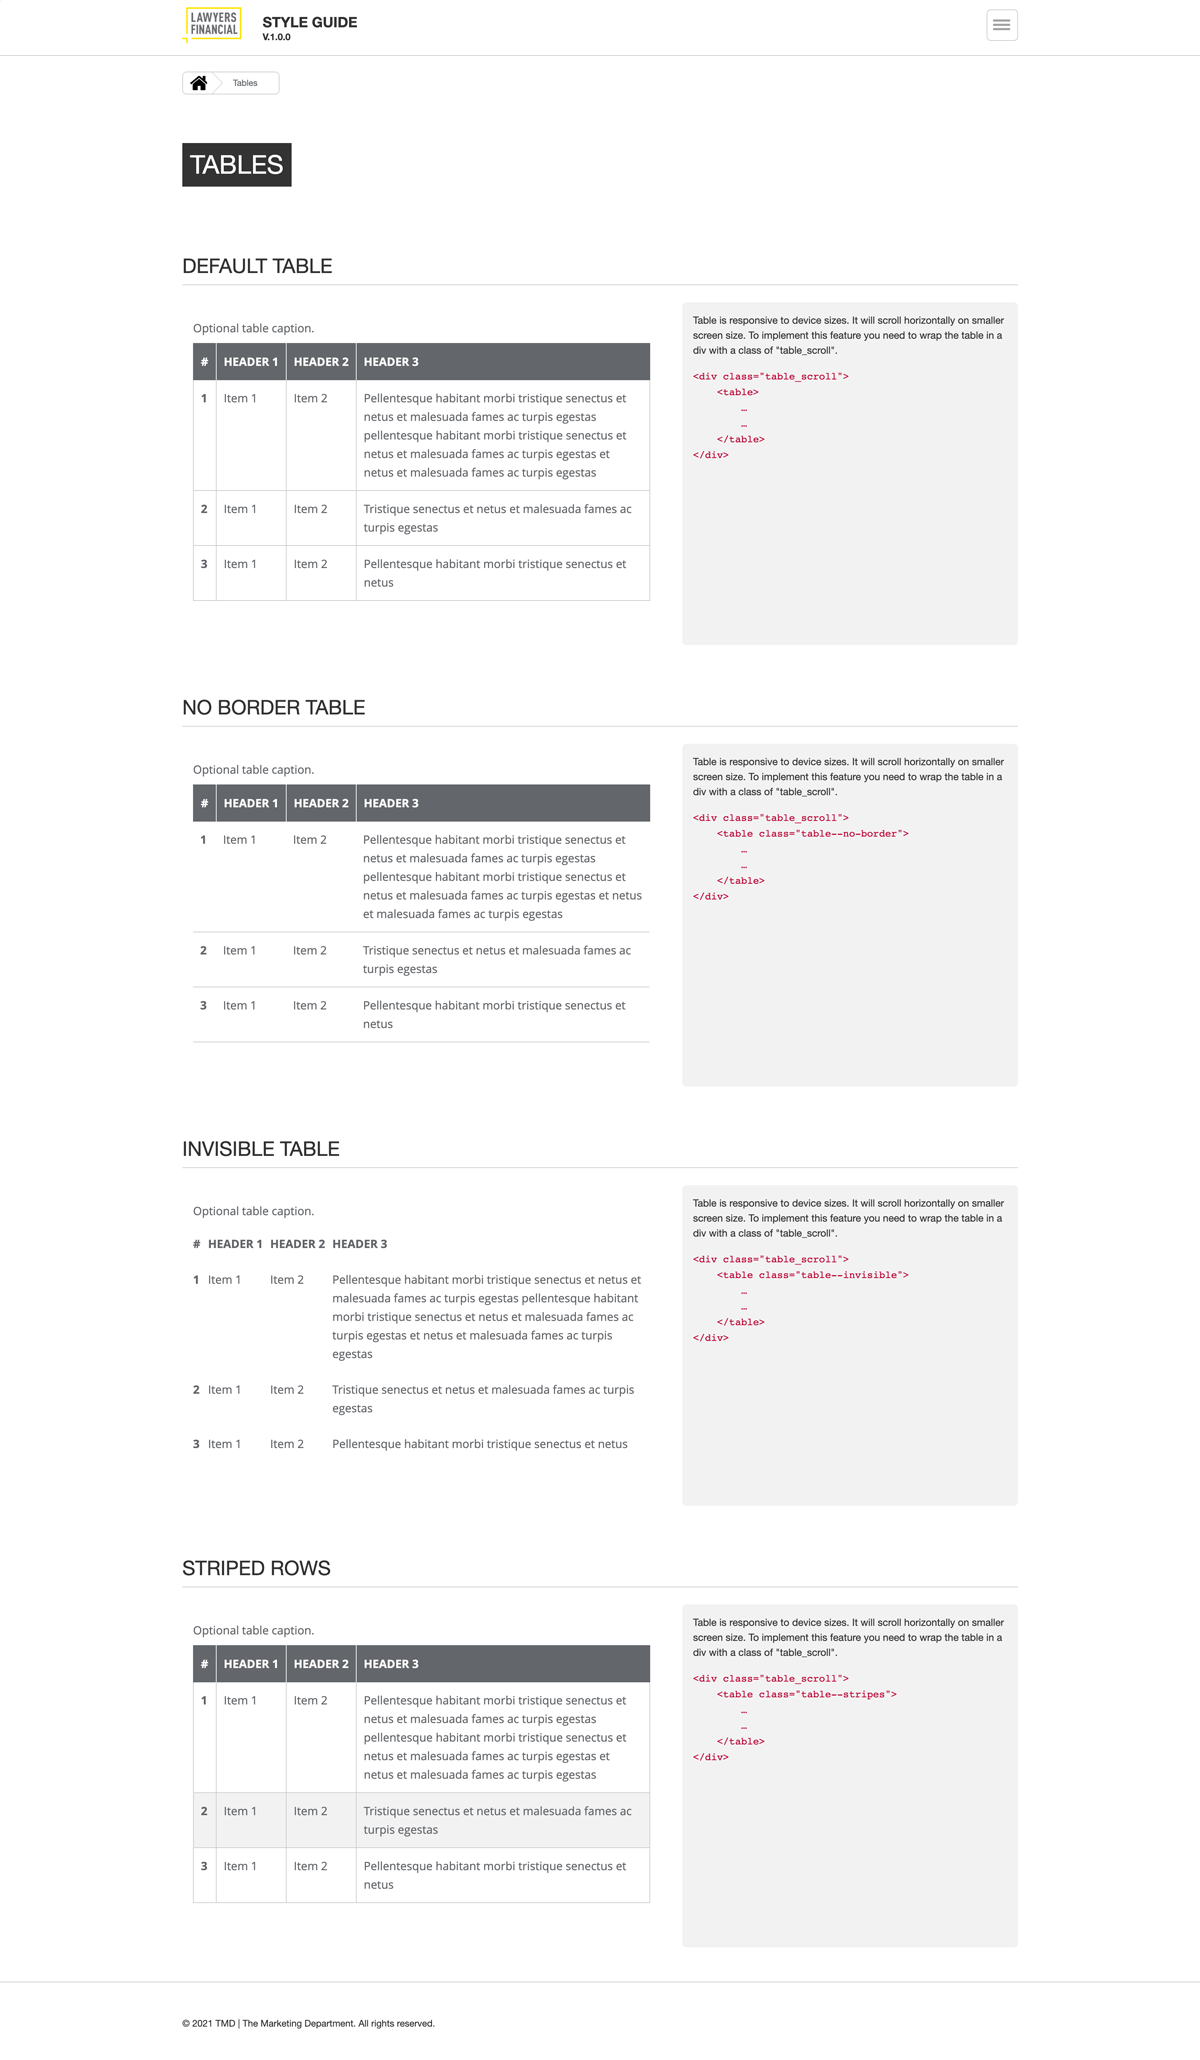 Style guide tables page